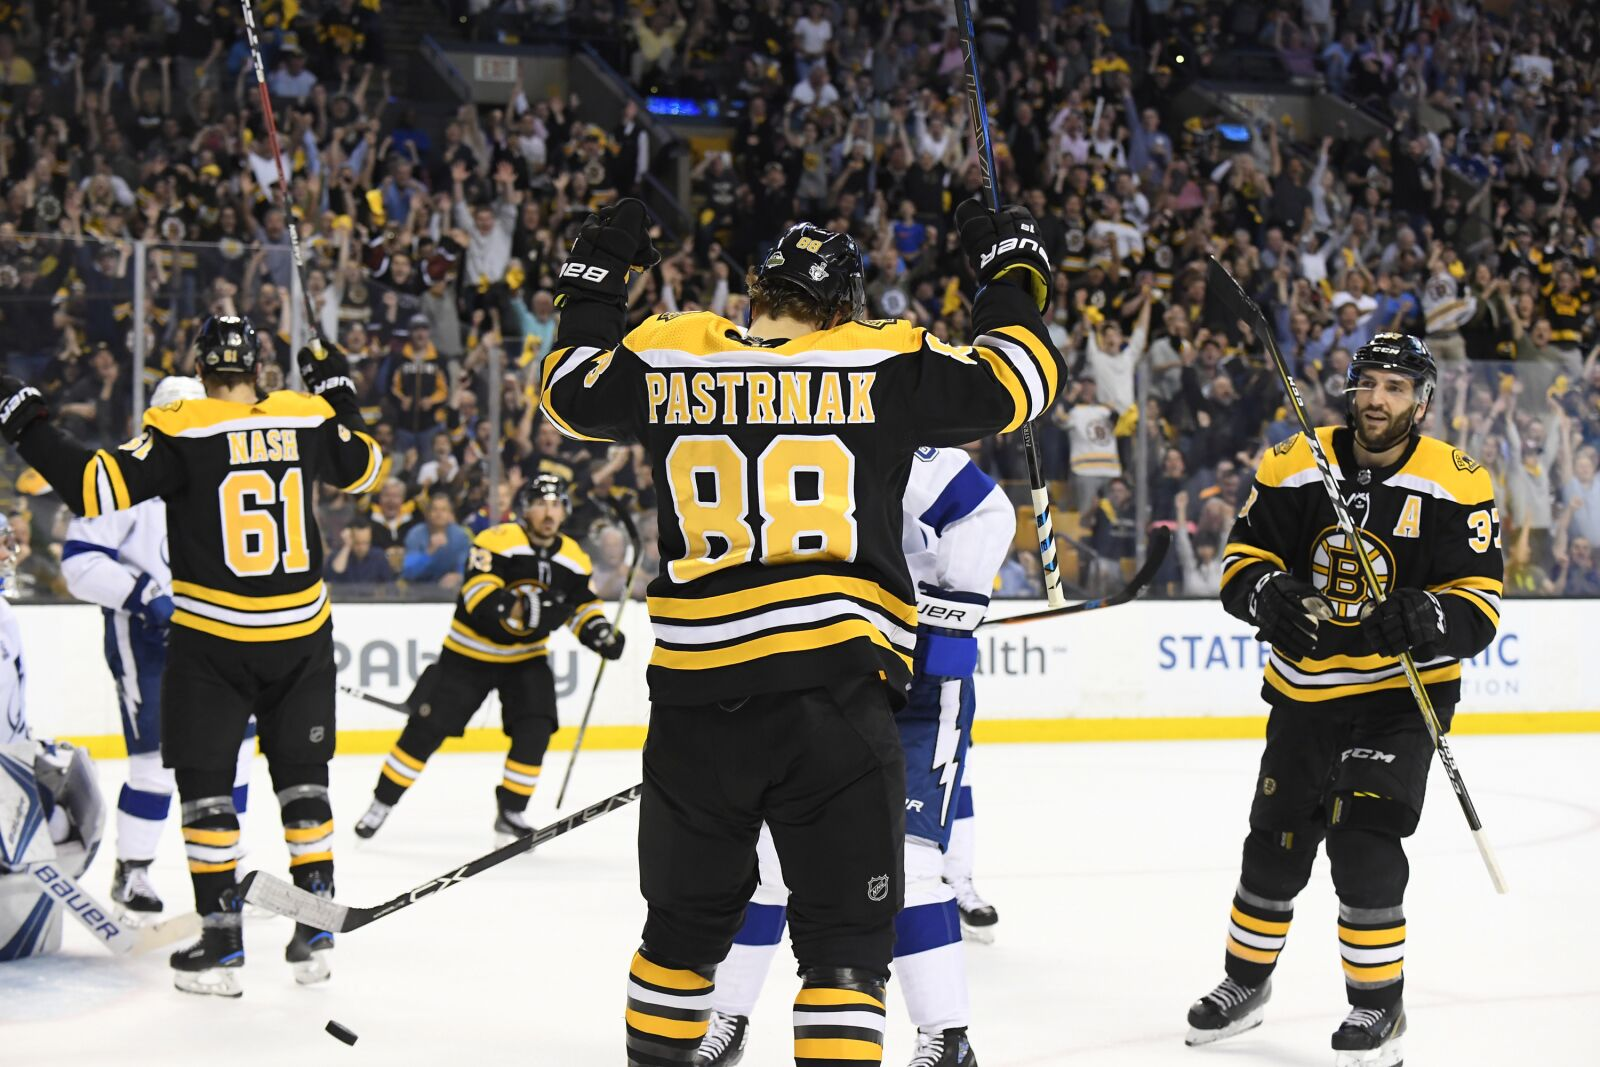 e9be9491deb If the Bruins don't work out, David Pastrnak can always play for Red Sox